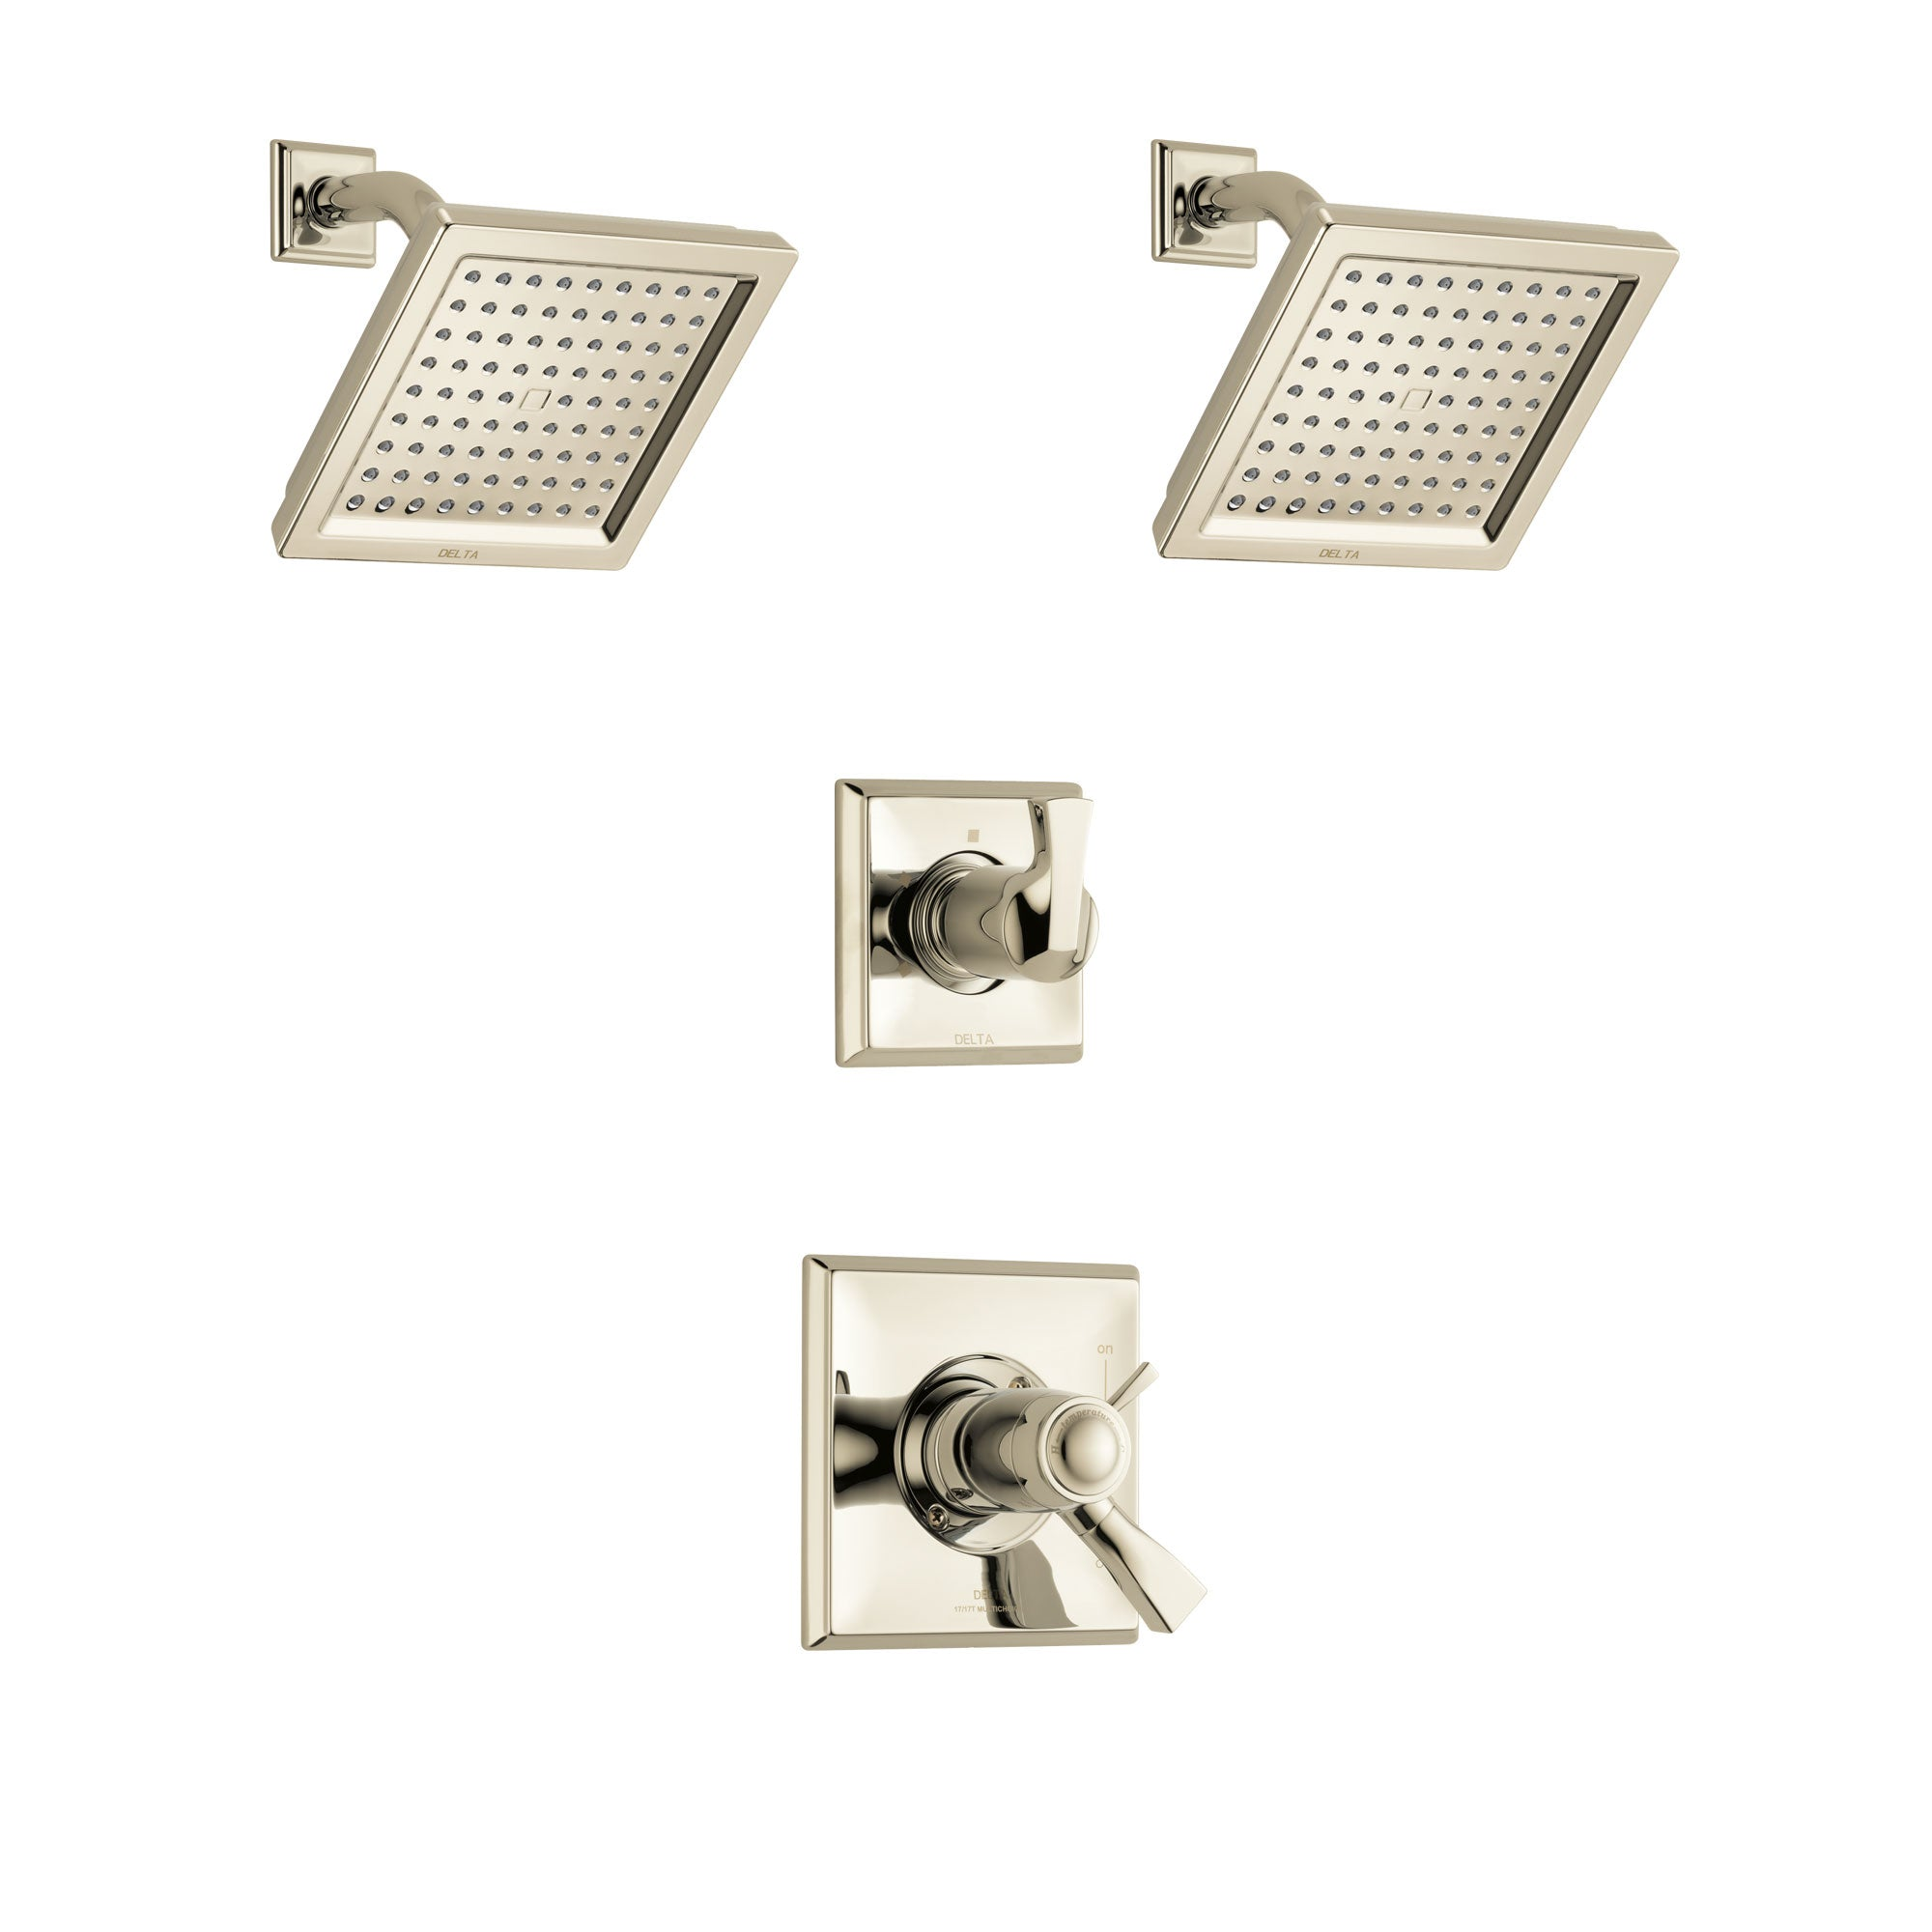 Delta Dryden Polished Nickel Finish Shower System with Dual Thermostatic Control Handle, 3-Setting Diverter, 2 Showerheads SS17T2511PN4